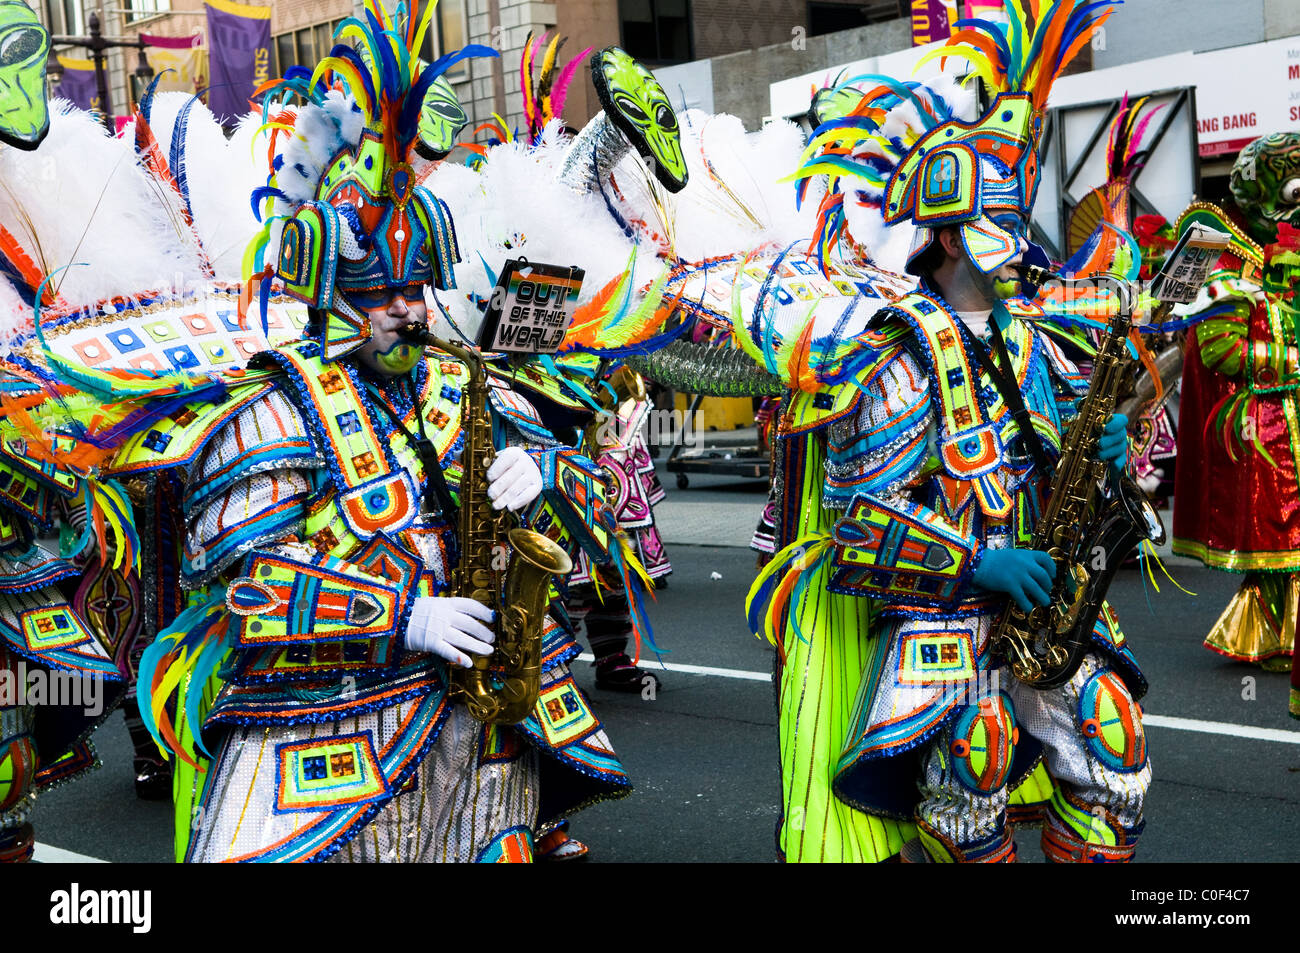 The colorful Mummers parade in Philadelphia, USA. - Stock Image